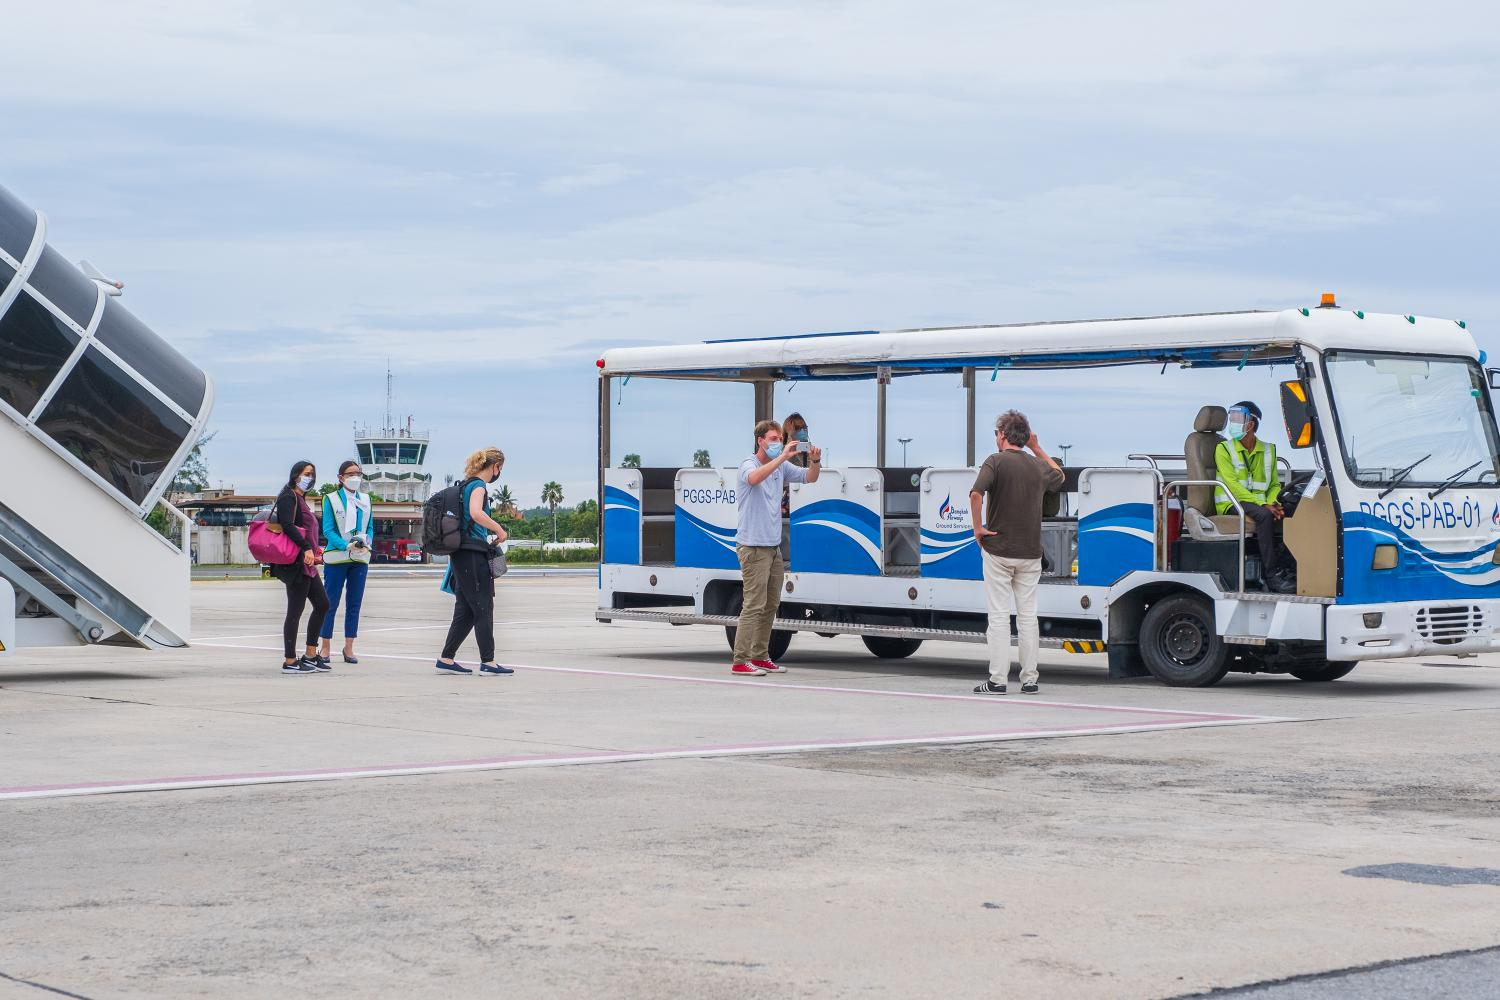 Passengers arriving under the Samui Plus travel scheme on July 15 catch a shuttle to the main building at Koh Samui airport.